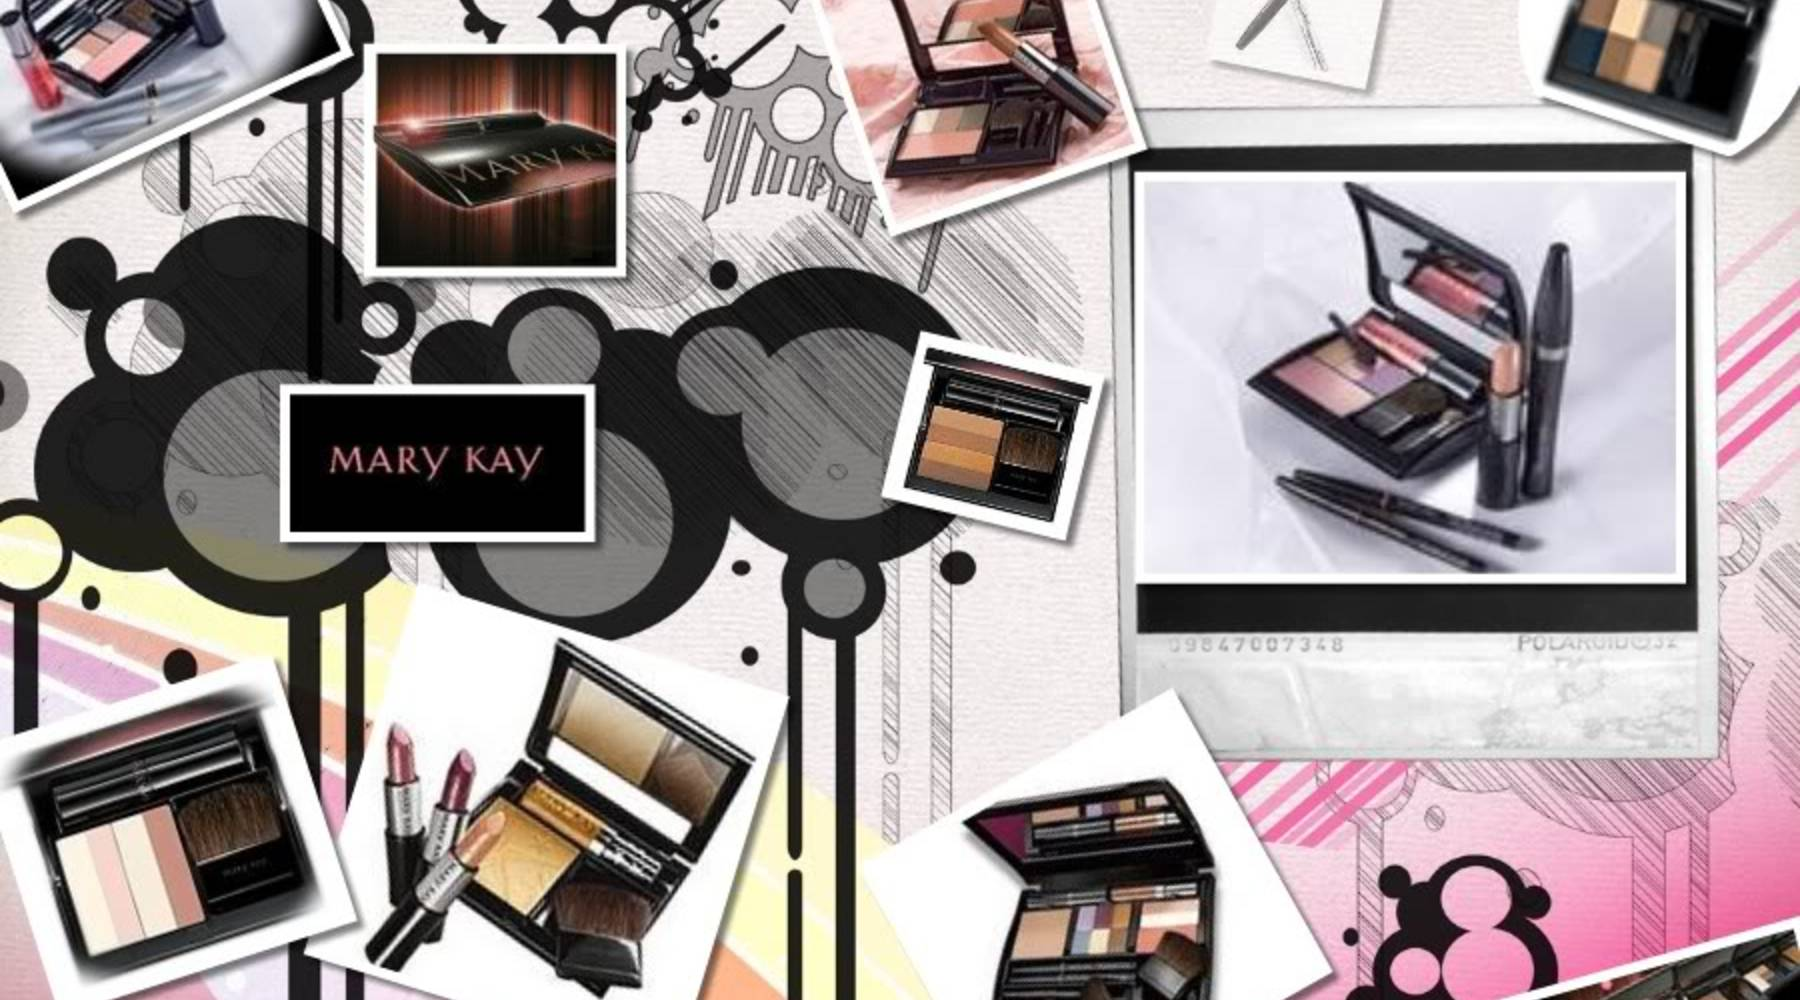 Life not so rosy for women selling Mary Kay cosmetics - Marketplace